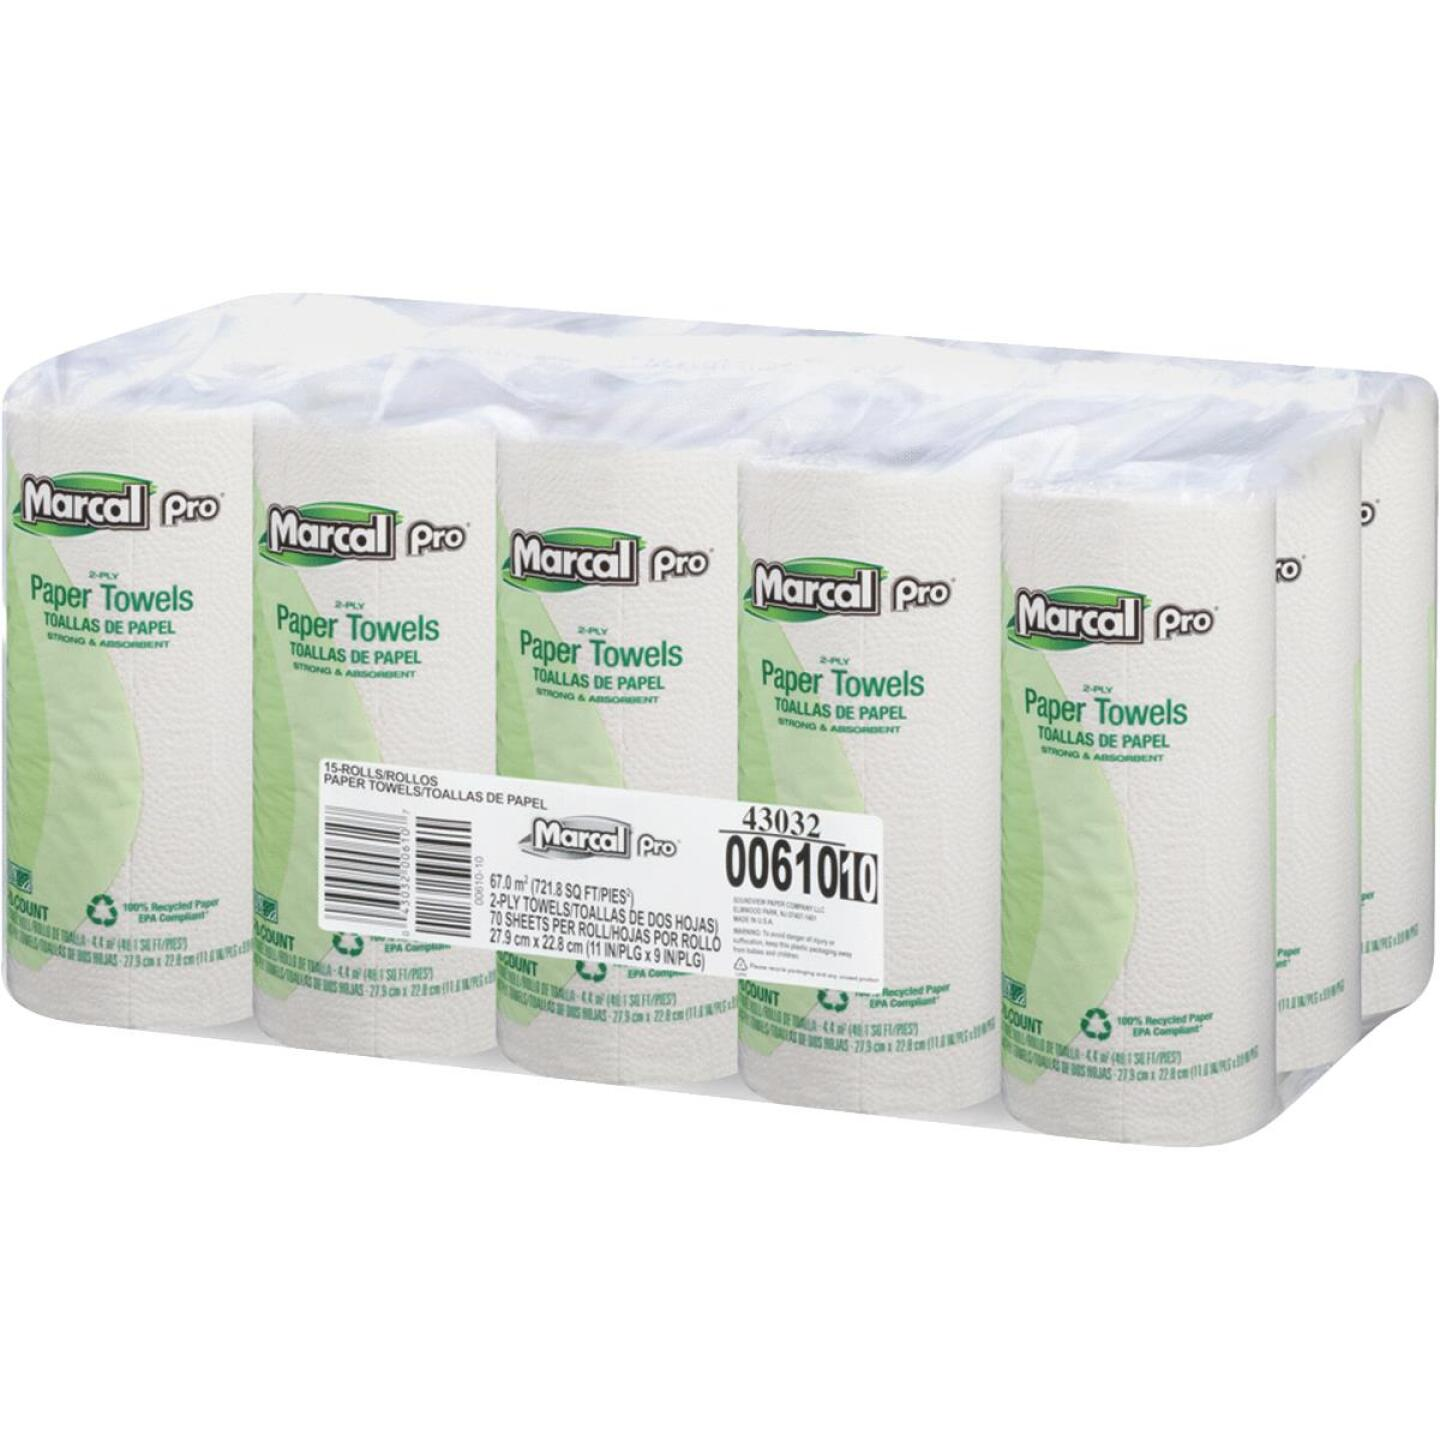 Marcal Pro Recycled Paper Towel (15-Roll) Image 1